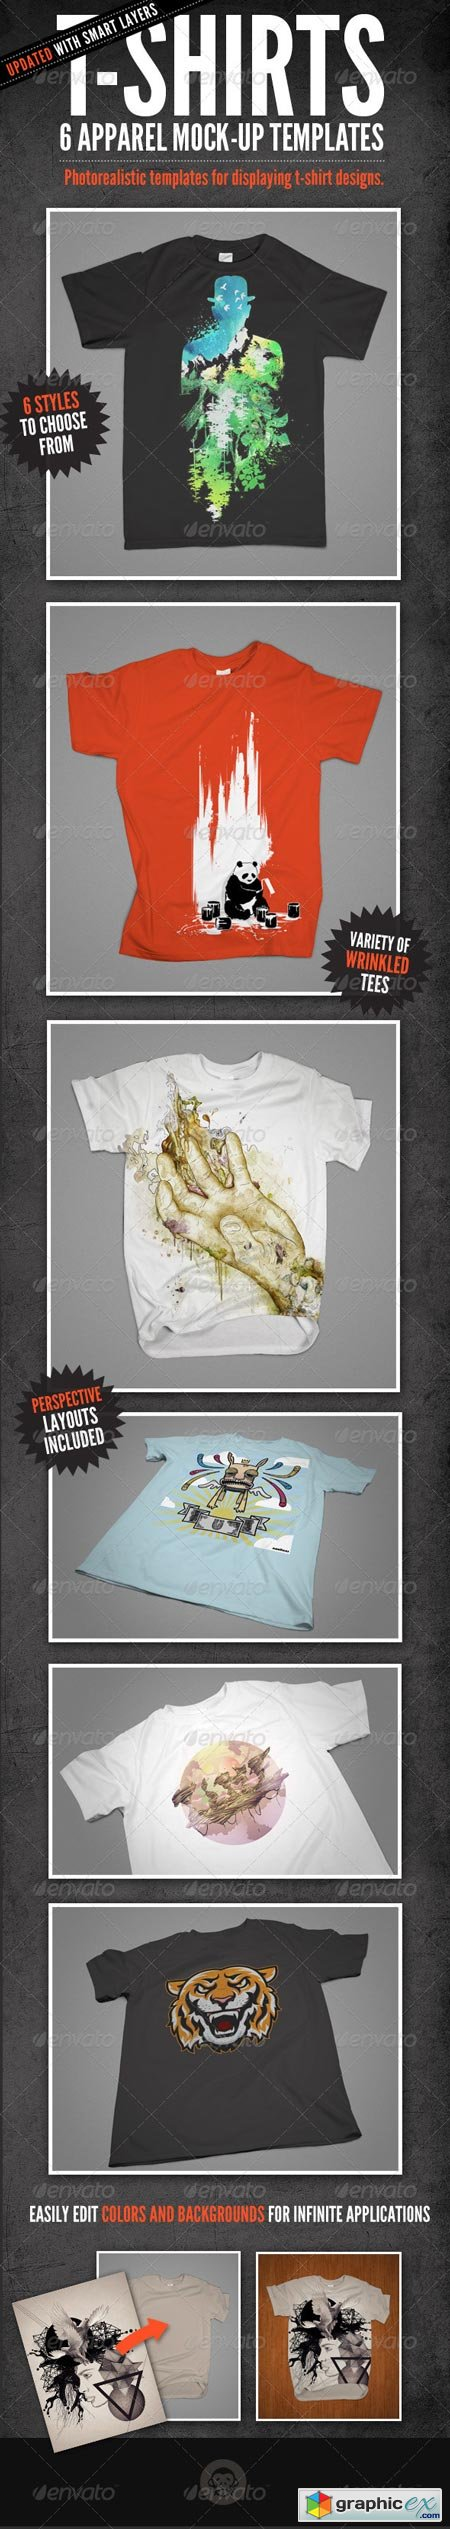 T-Shirt Mock-Ups - Apparel Design 140080